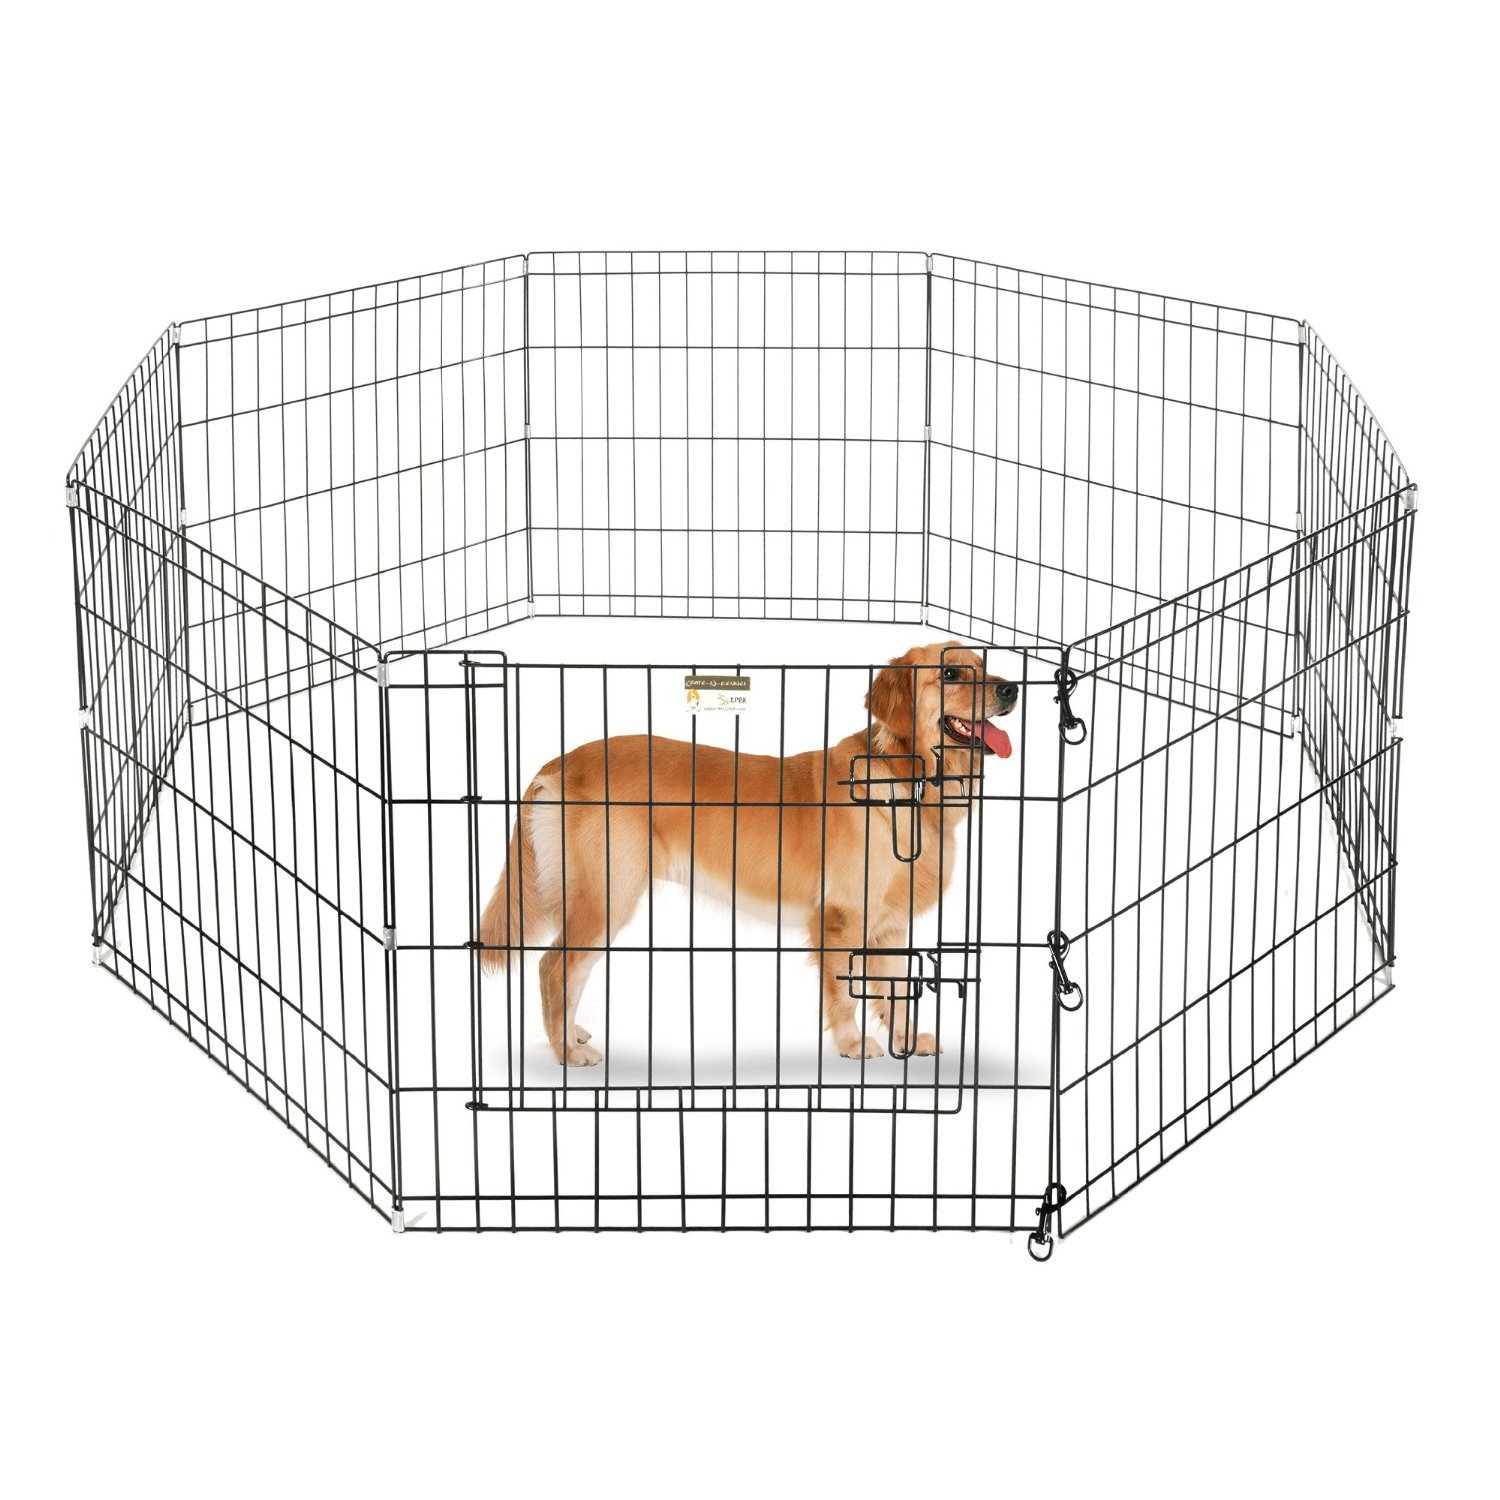 ALEKO SDK-48B Heavy Duty Pet Playpen Dog Kennel Pen Exercise Cage Fence 8 Panel 48 x 24 Inches Black